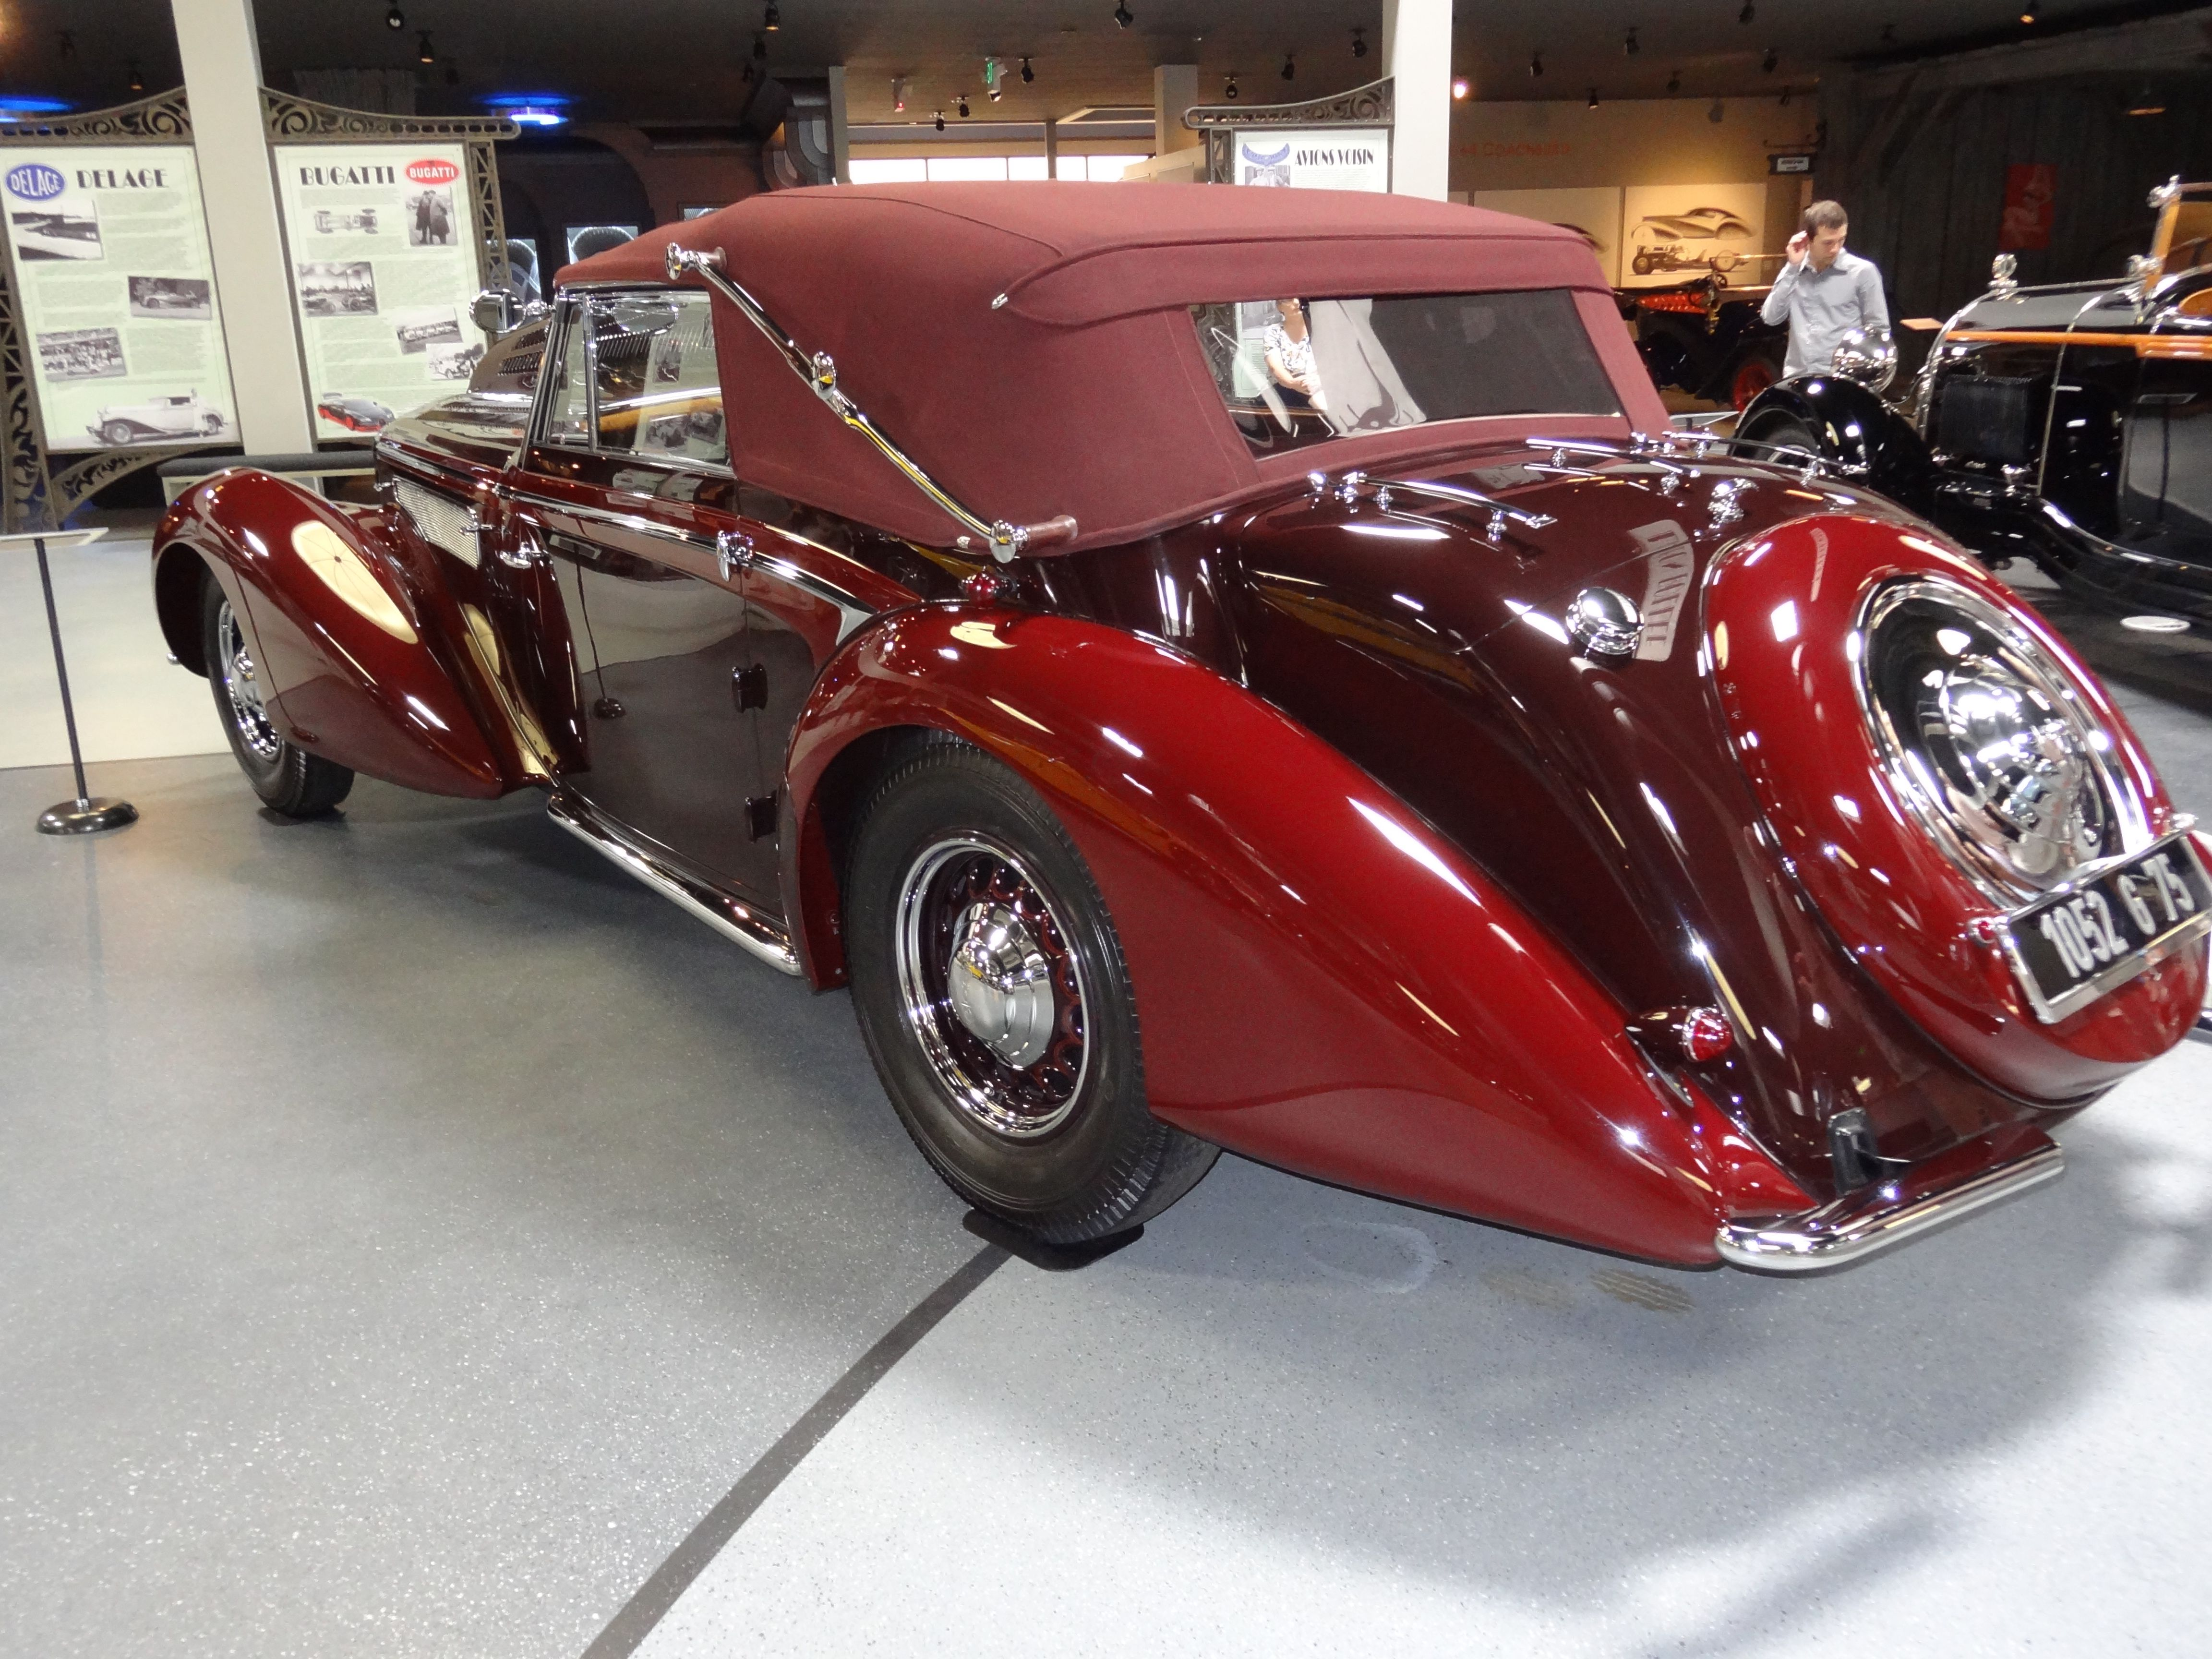 Cool French Art Deco Cars From The Ss On Display At The - Cool french cars